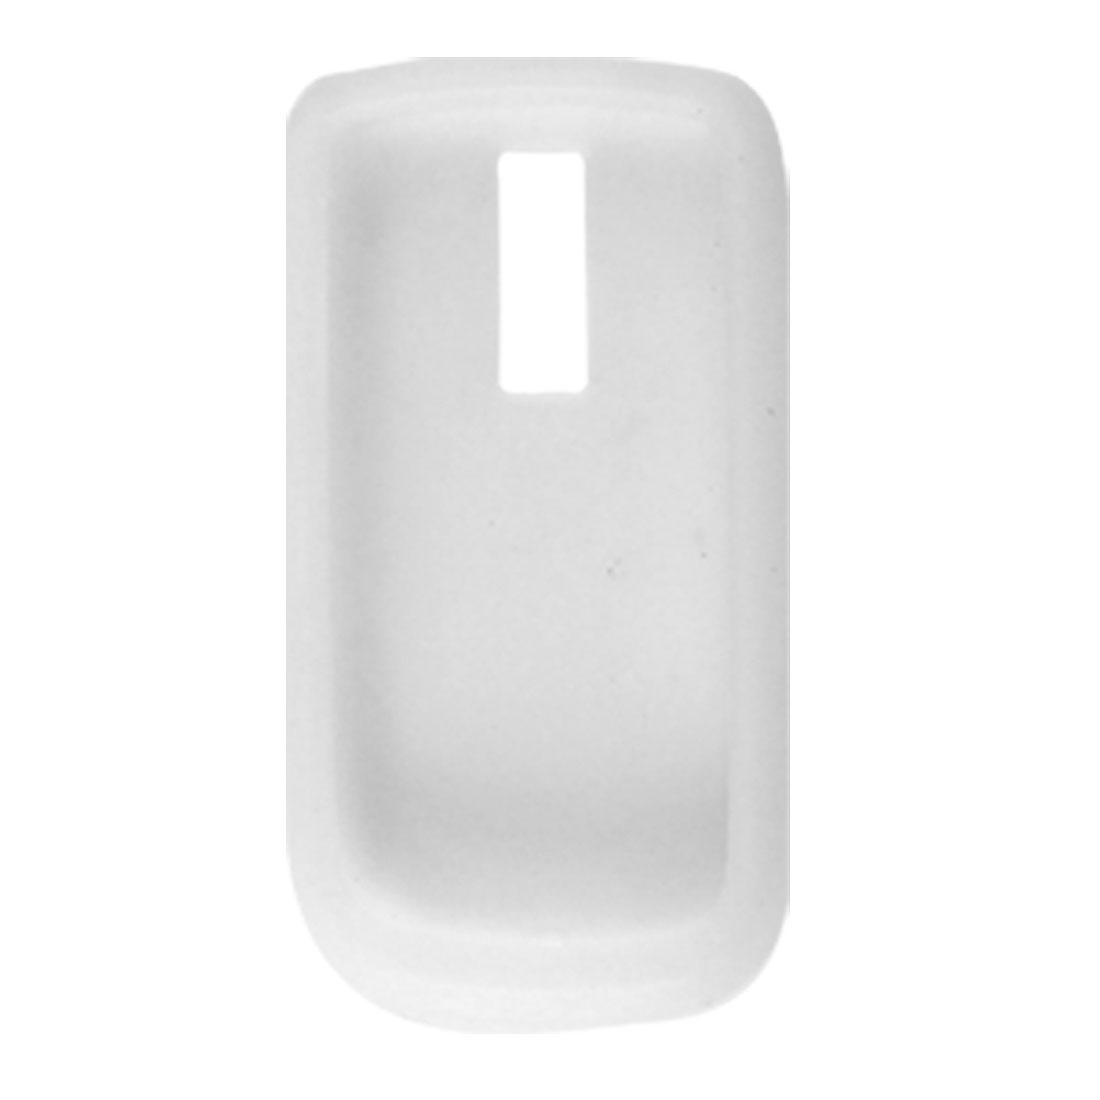 Protective Silicone White Skin Cover for HTC Magic G2